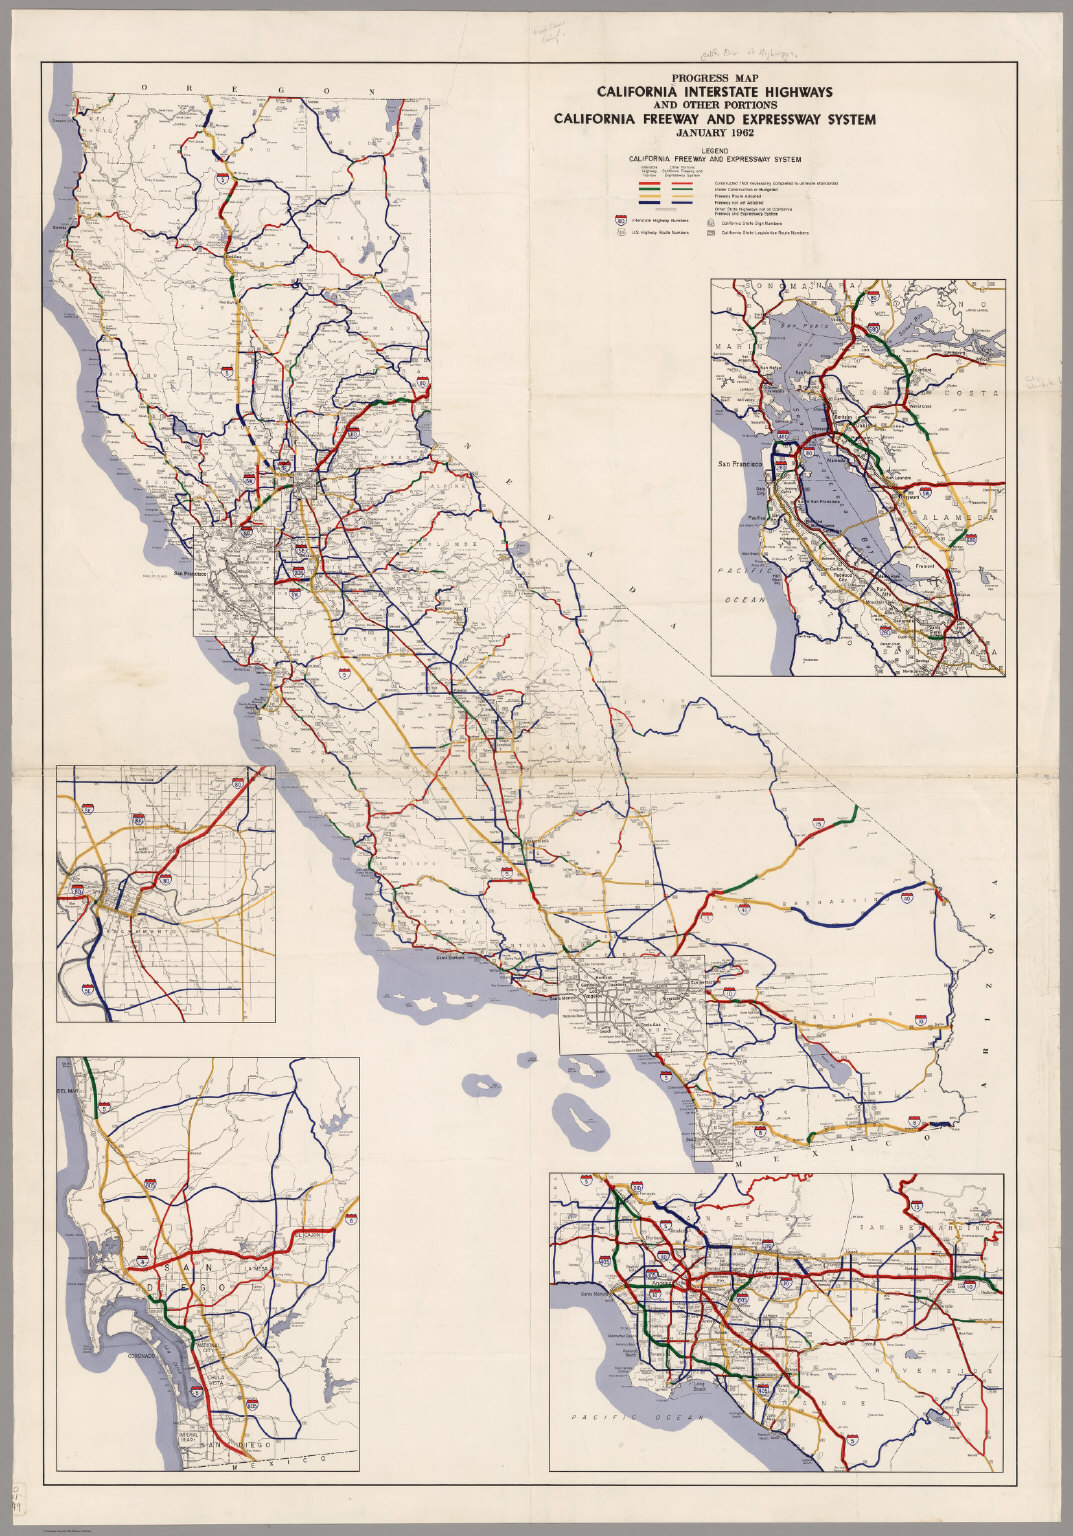 Progress Map, California Interstate Highways and Other Portions, May 1962.